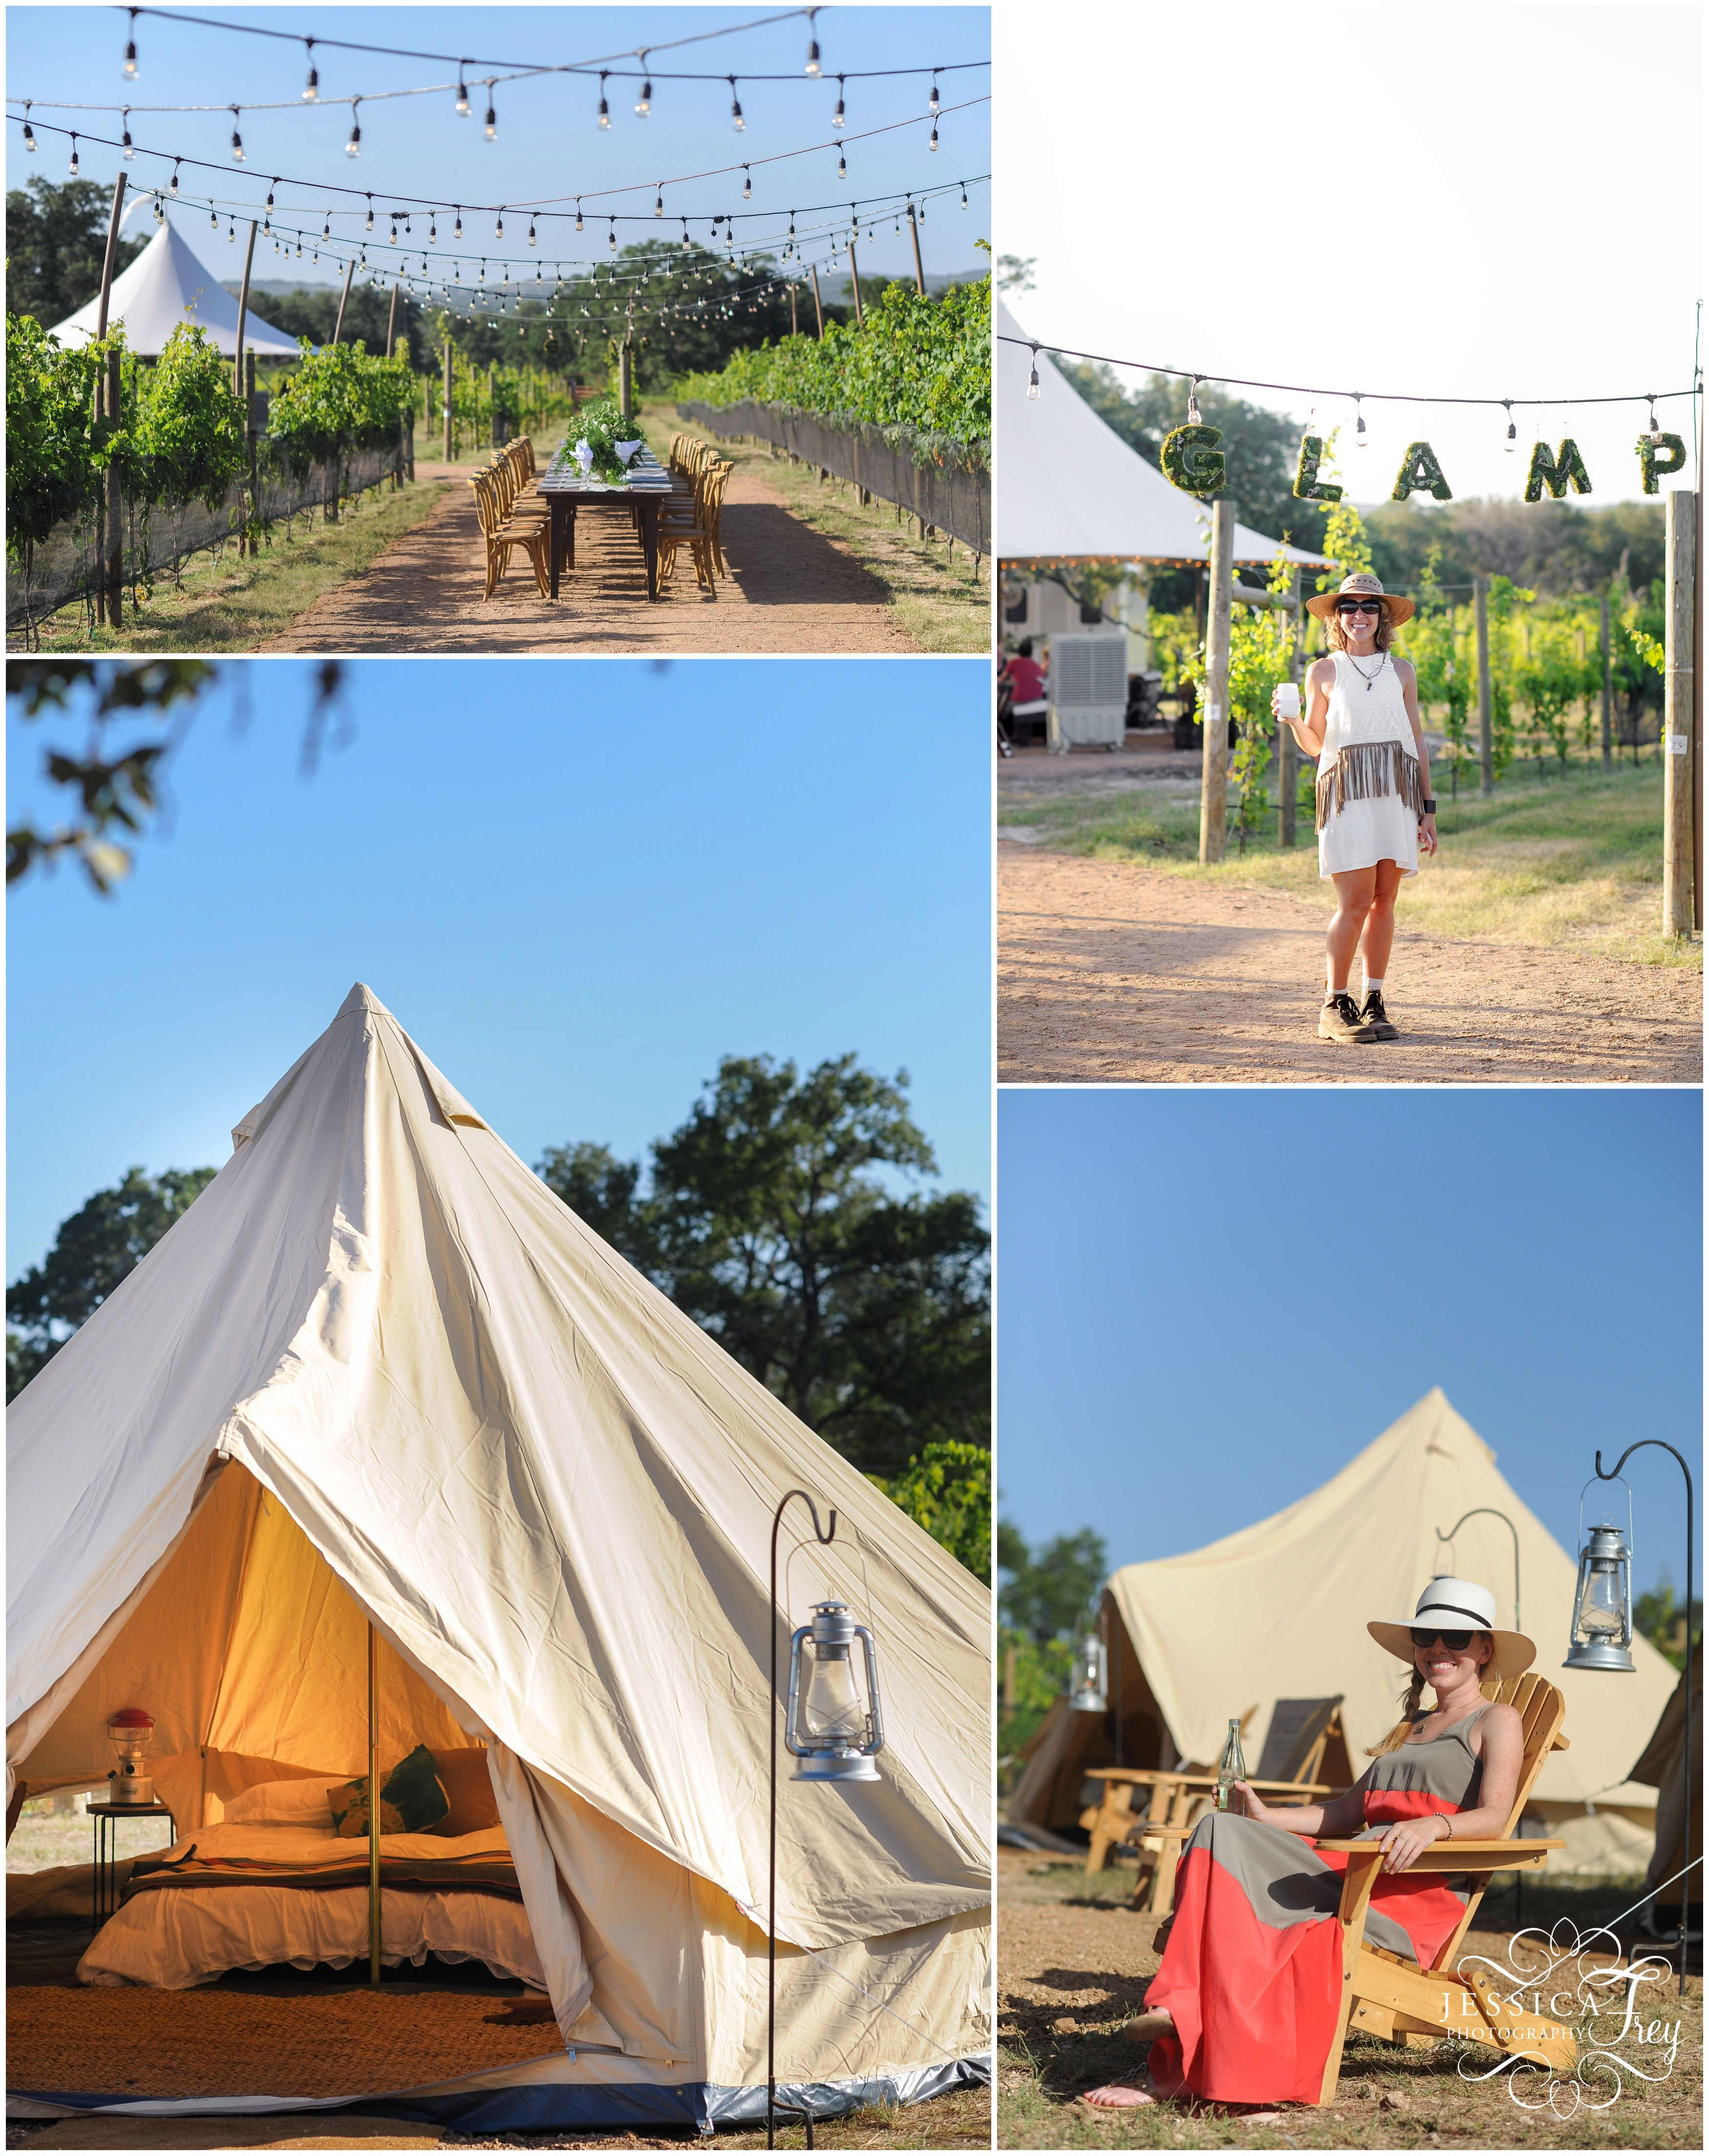 Gl&ing C& Lucy events C& Lucy tents Speary Tents Shelter Co tents & Glamping Camp Lucy events Camp Lucy tents Speary Tents Shelter ...